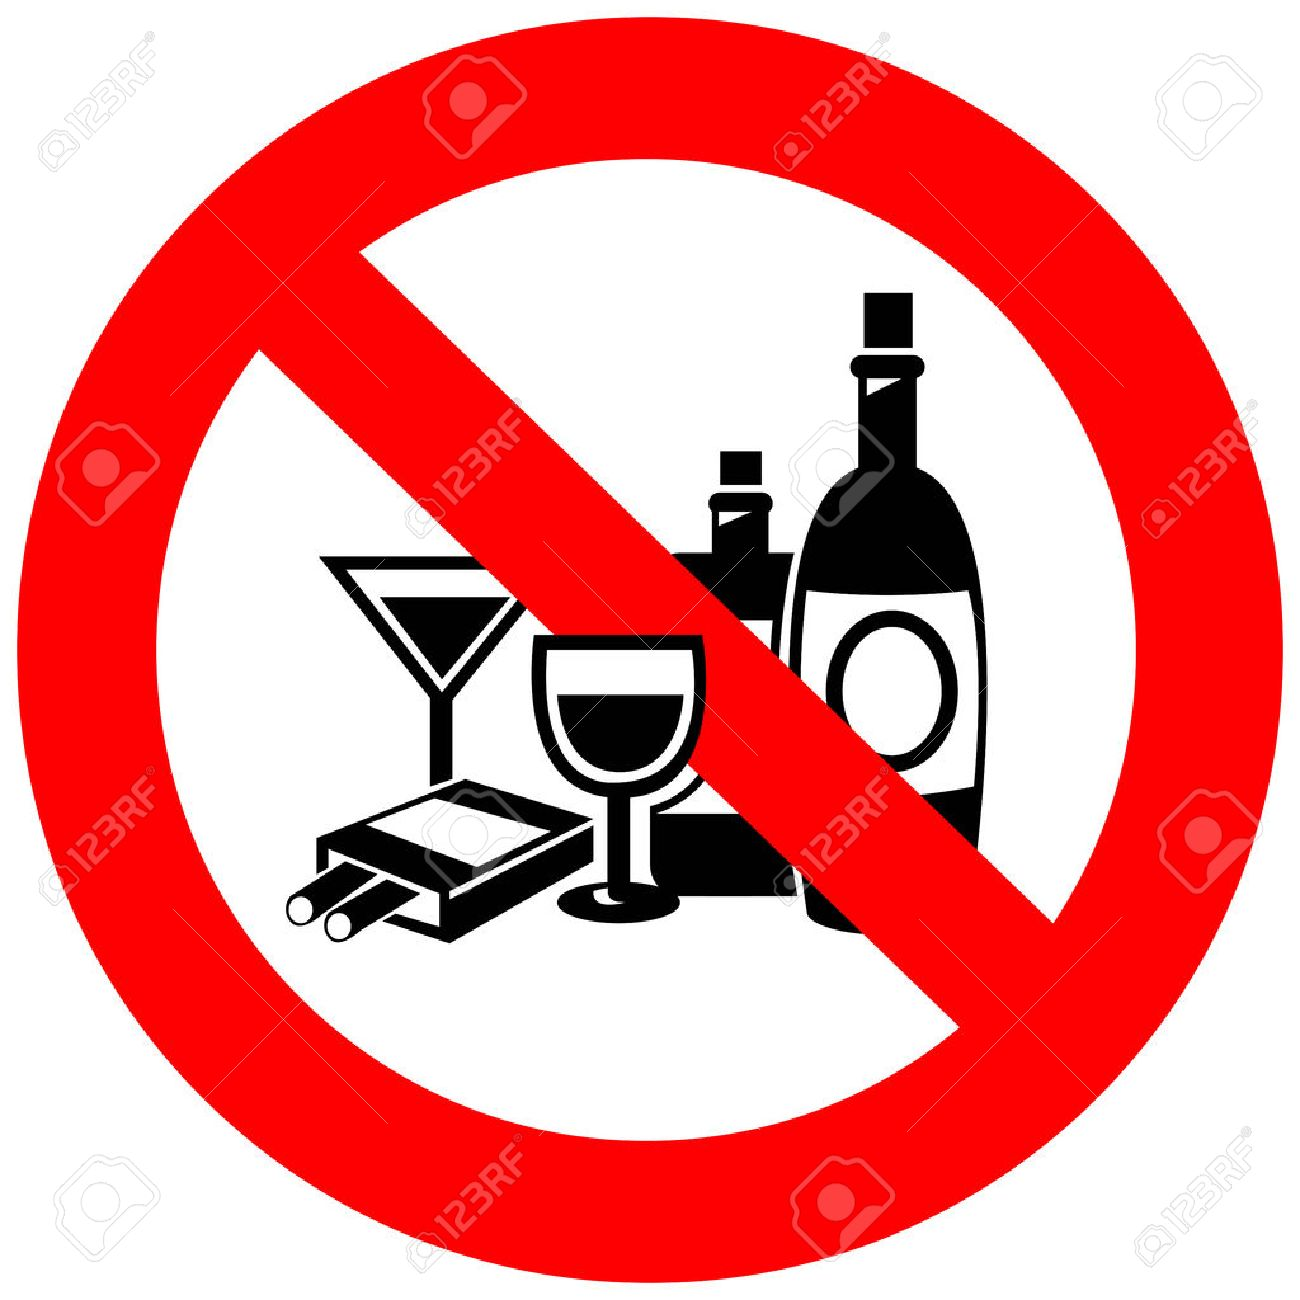 No Smoking And Drinking Clipart.